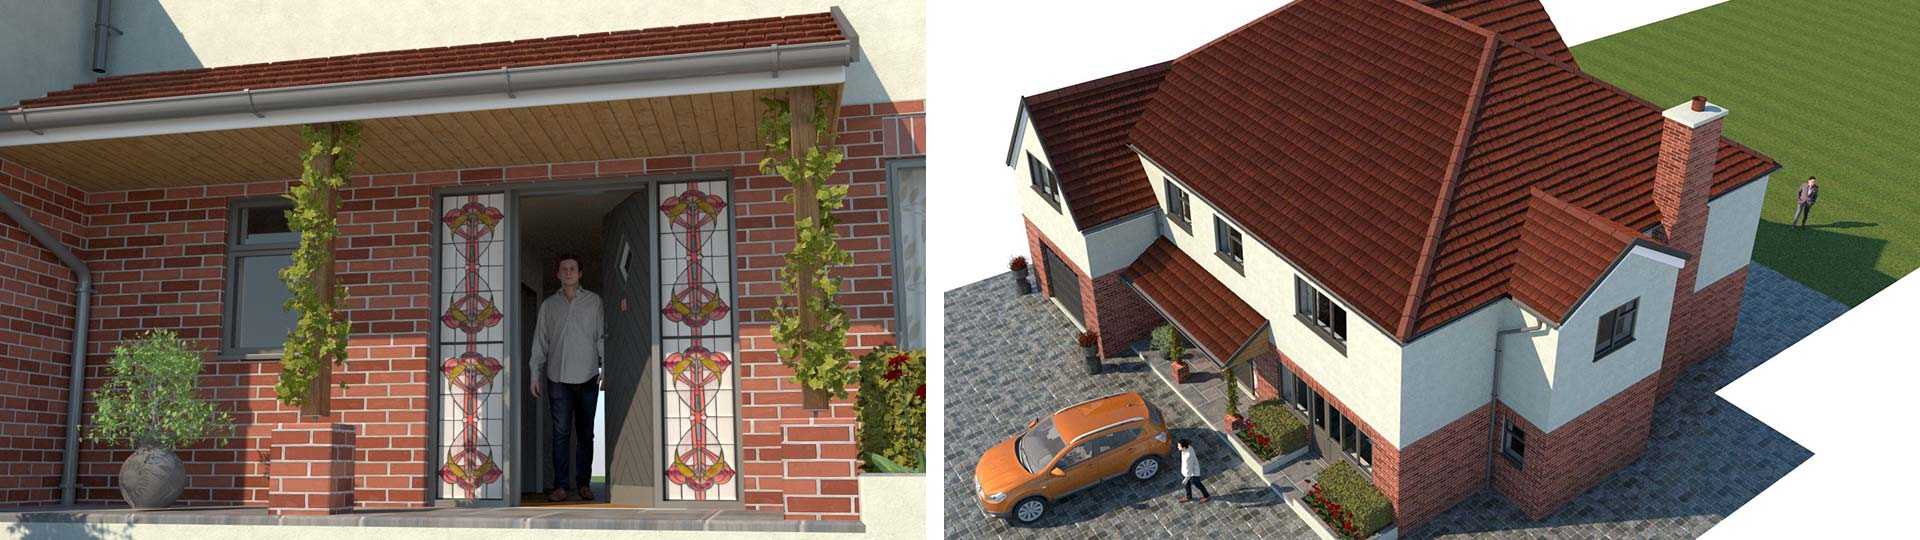 Architectural 3d Visualization of residential house